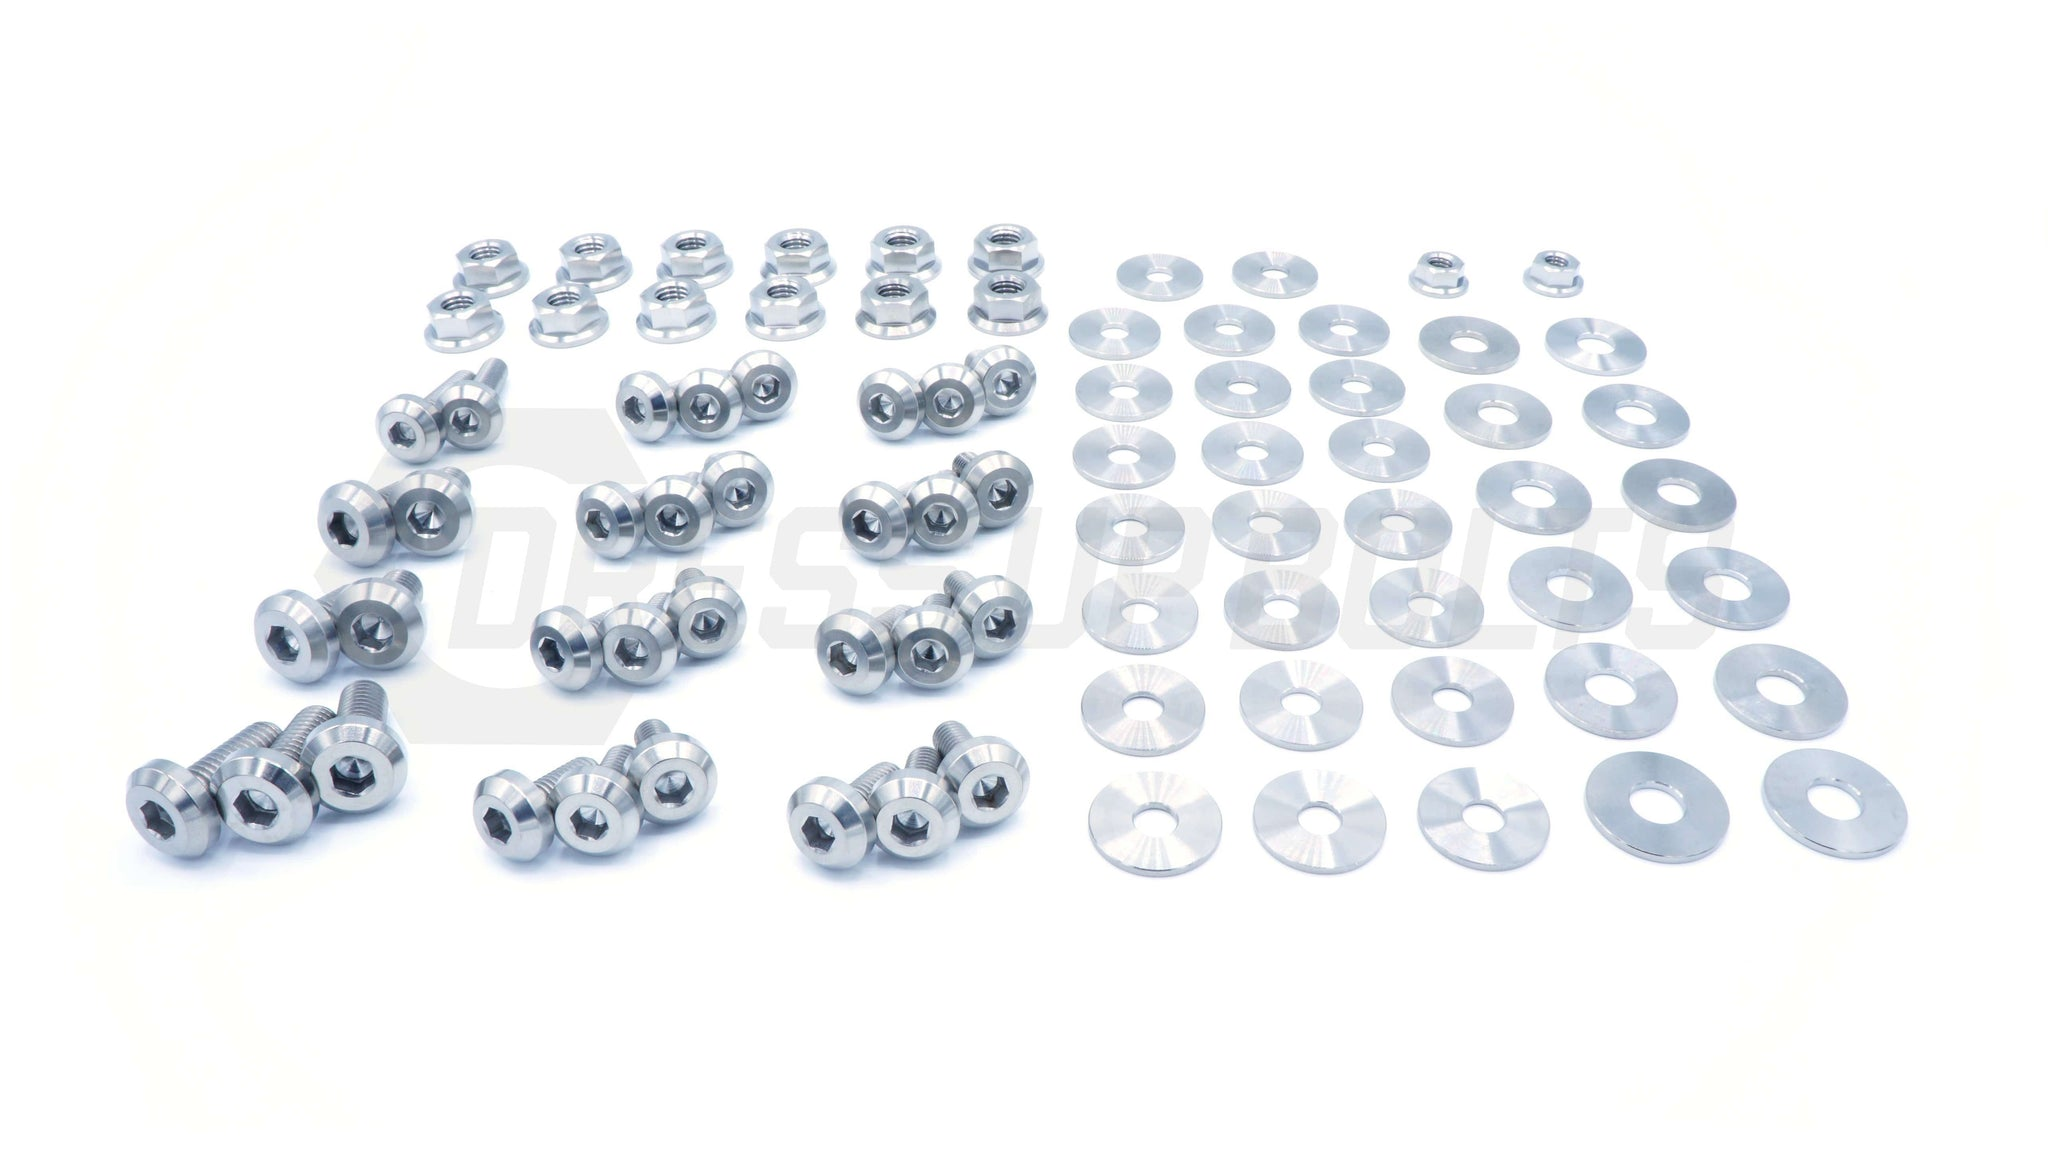 Subaru BRZ (2013-2019) Titanium Dress Up Bolts Full Engine Bay Kit - DressUpBolts.com